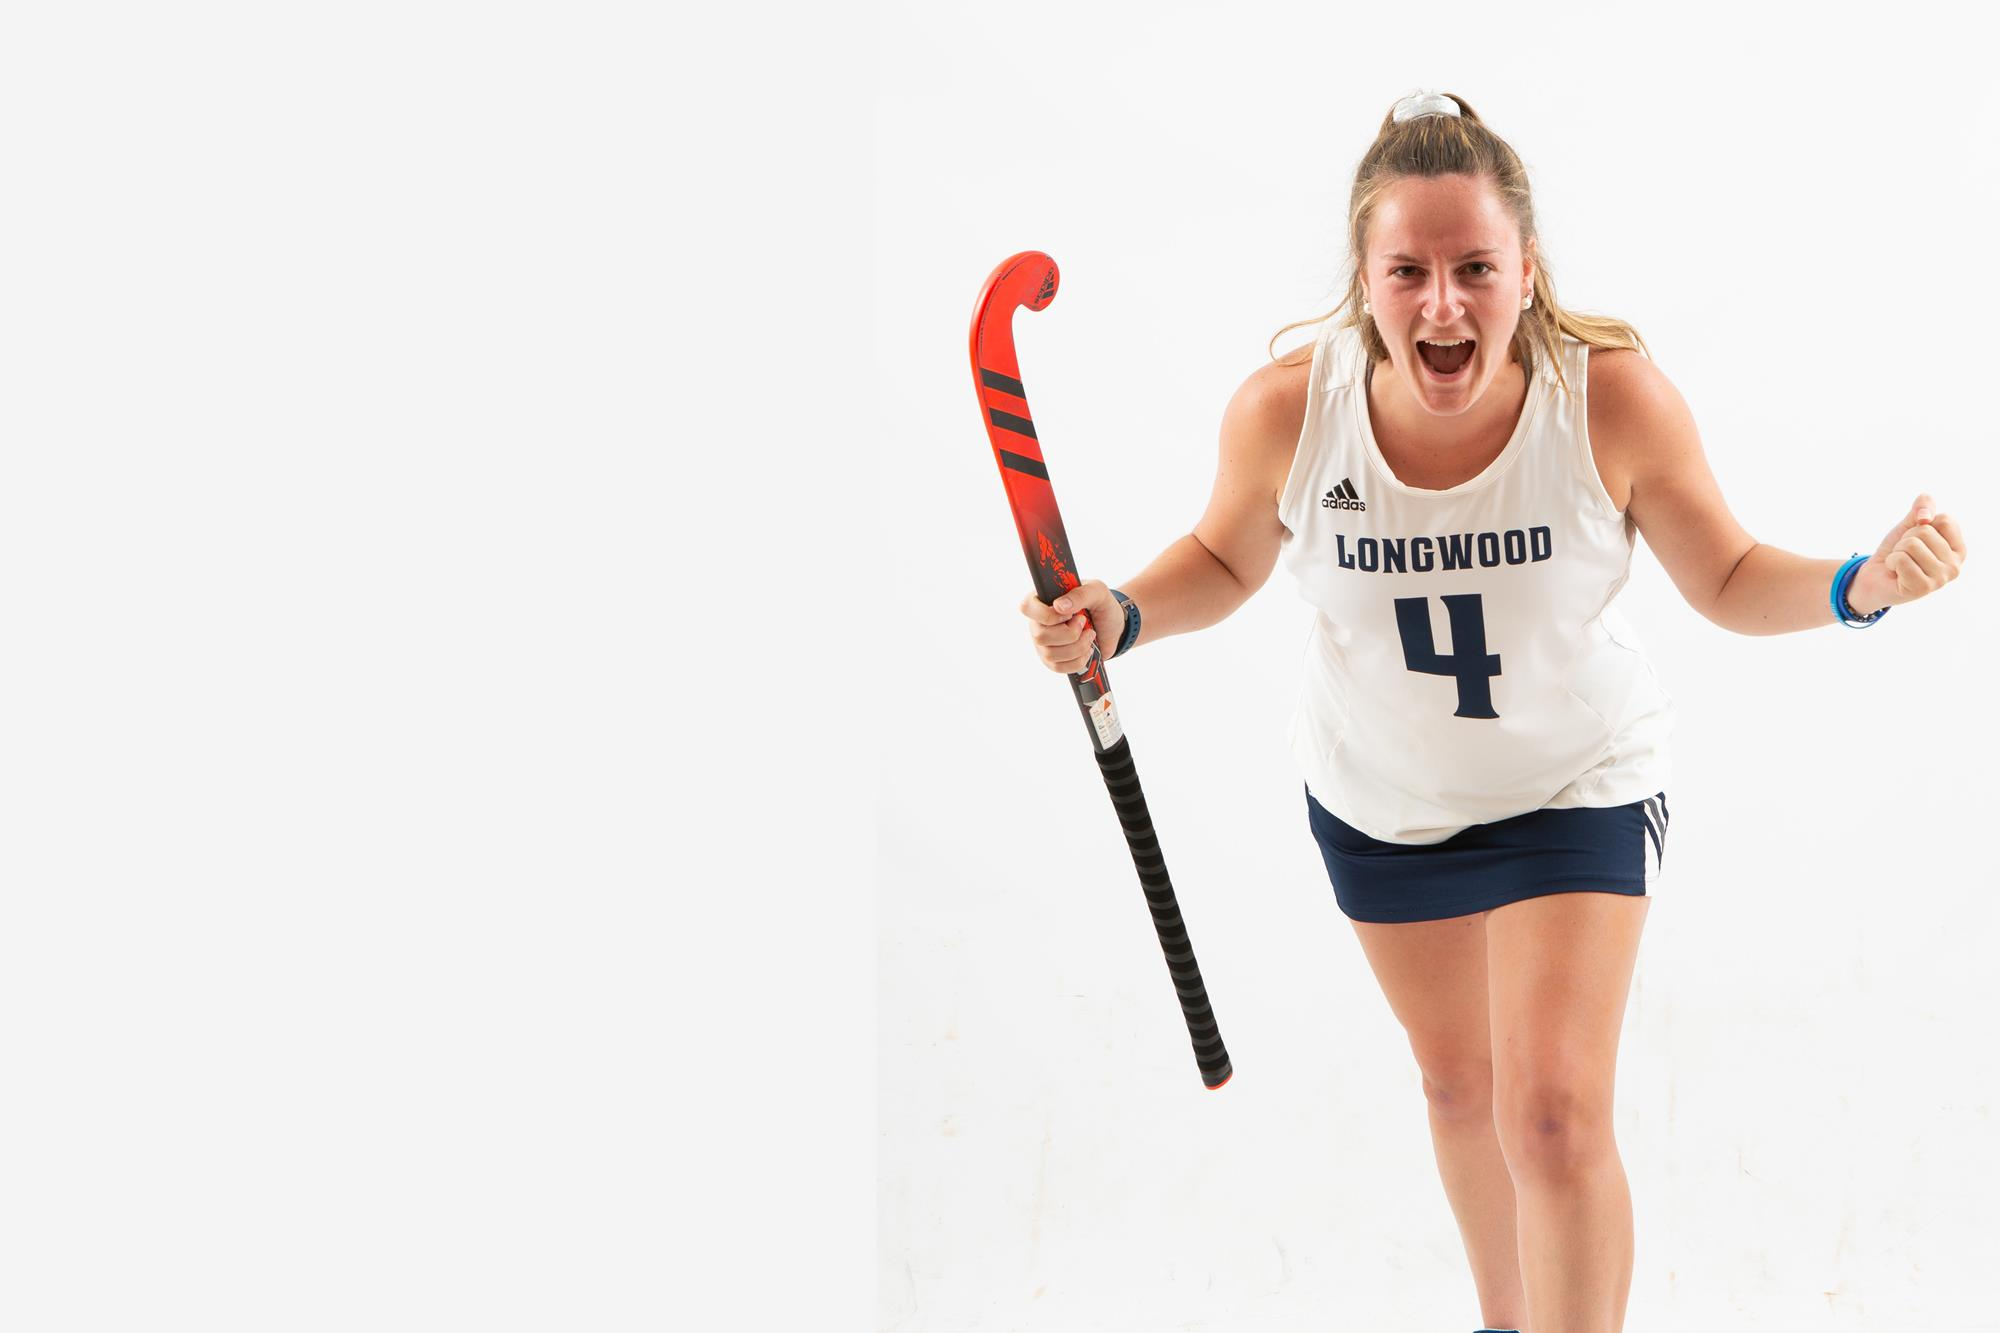 Lea Van Luvender - Field Hockey - Longwood University Athletics